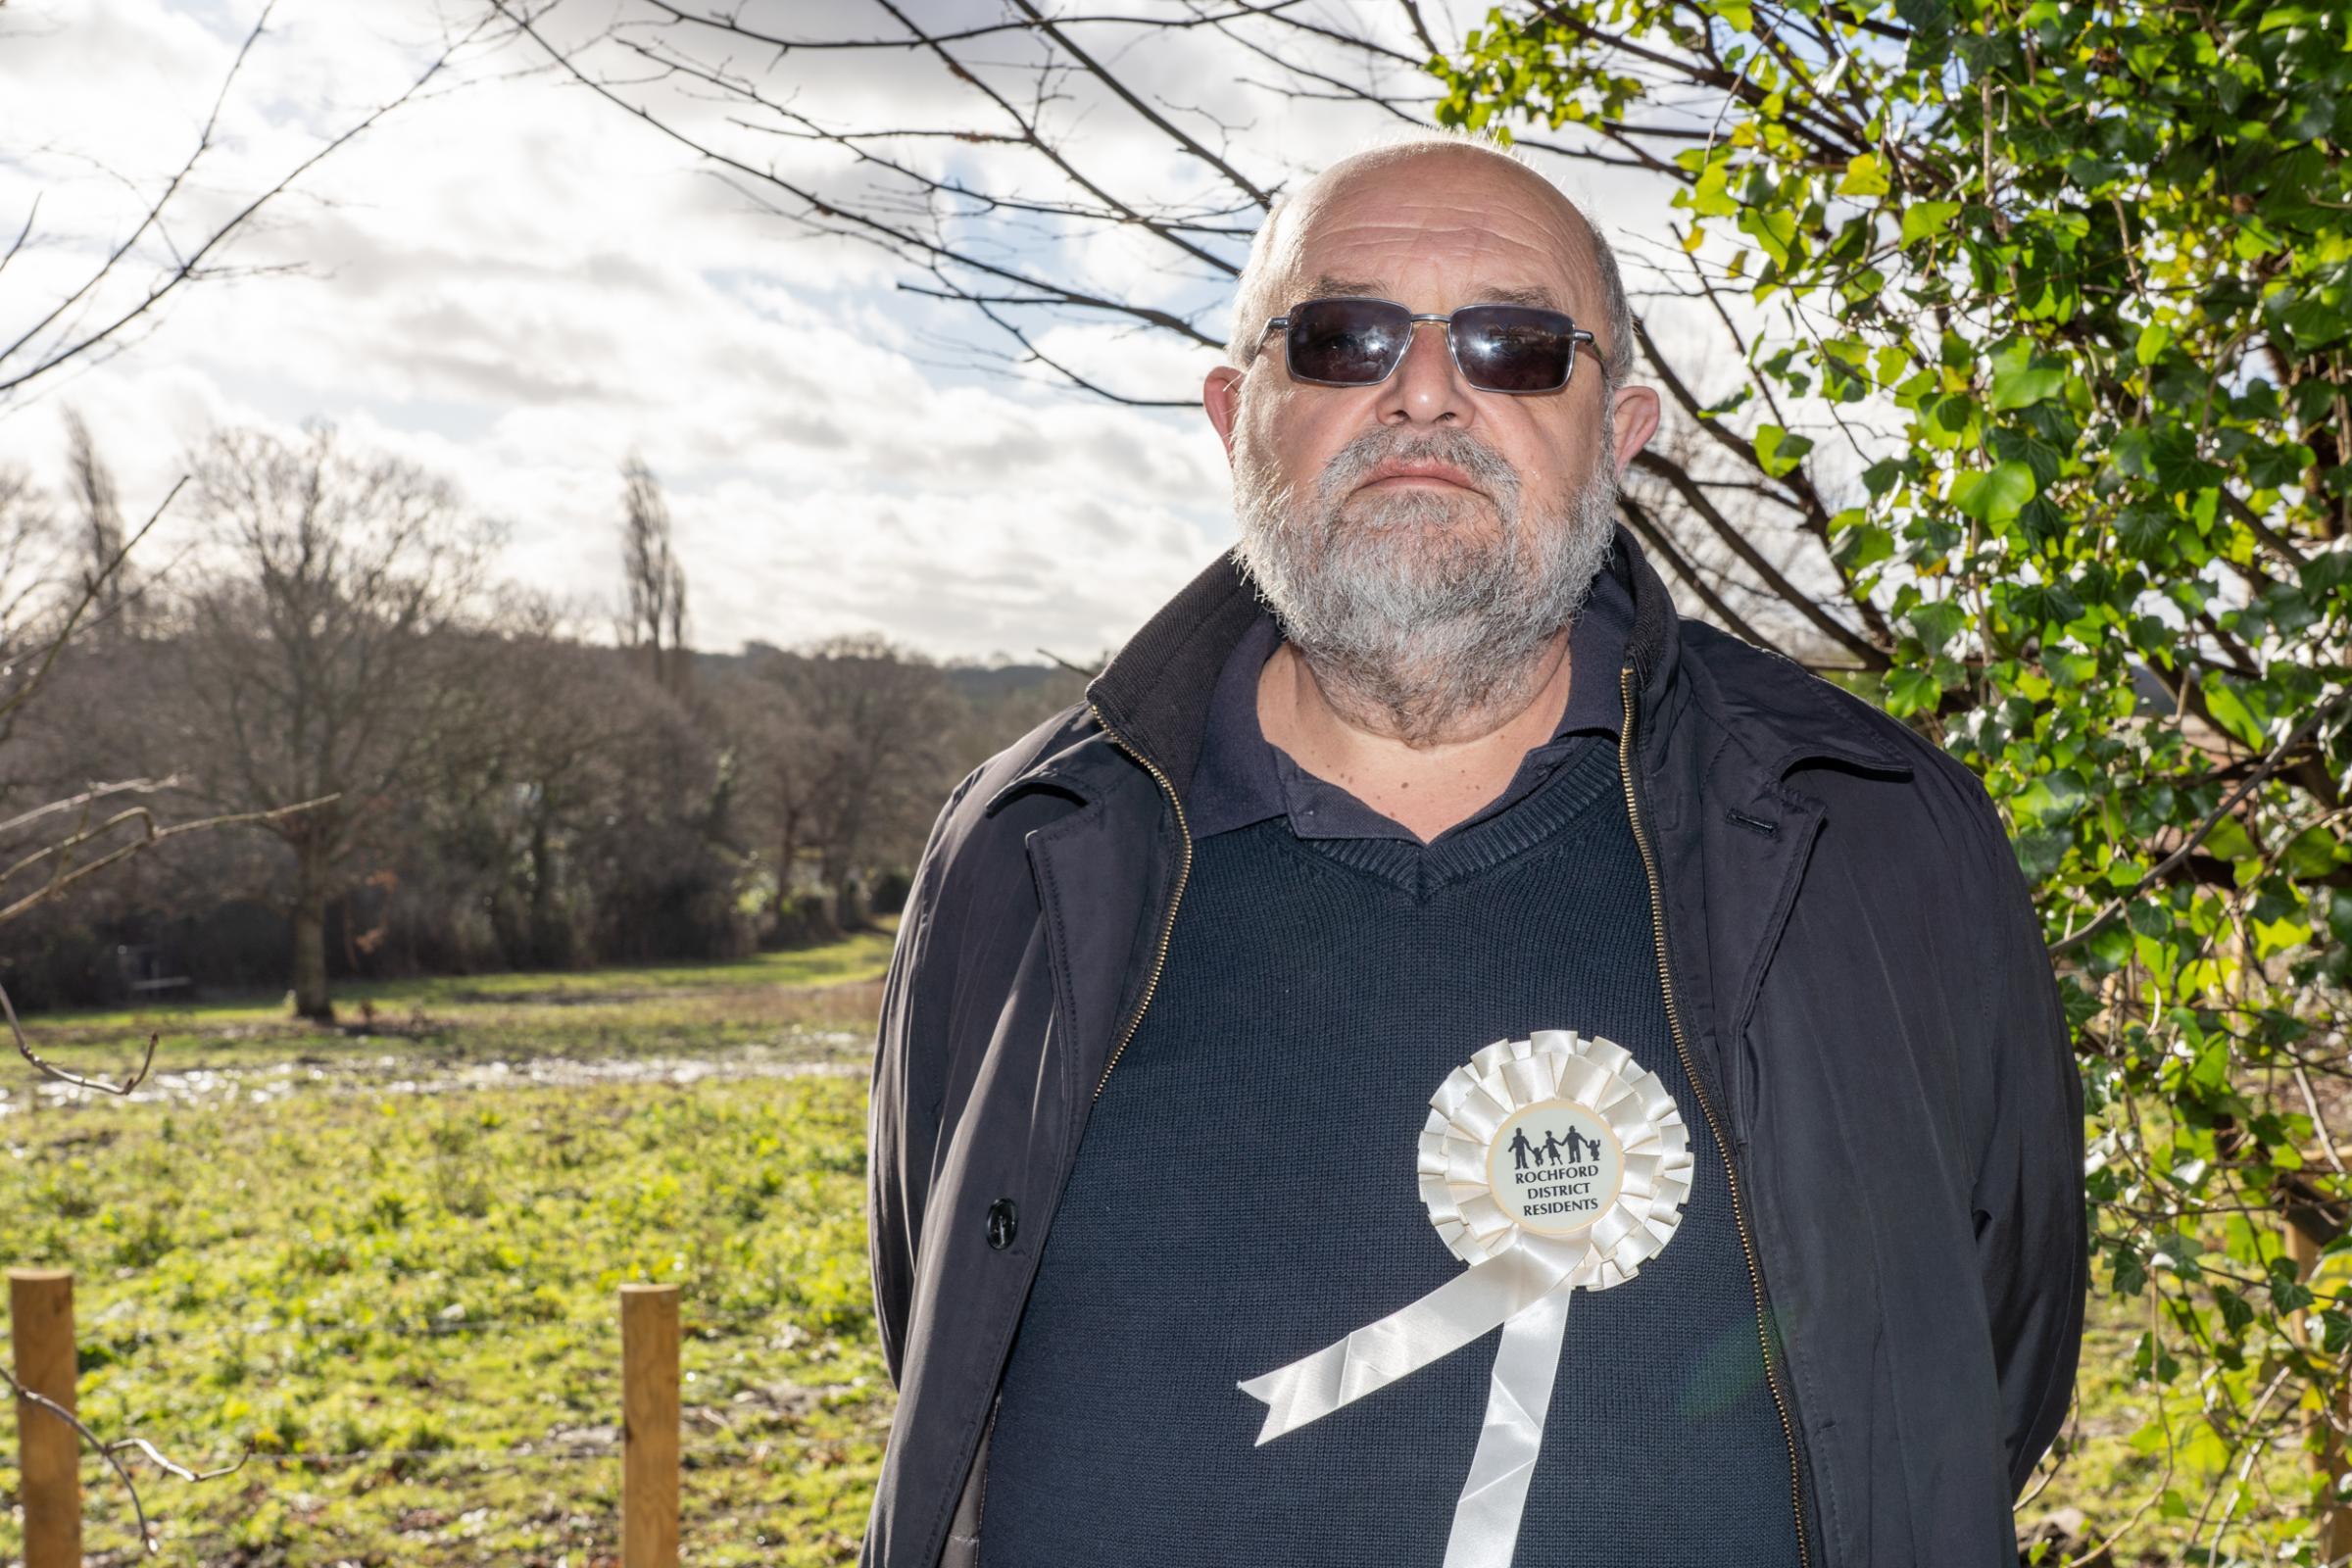 Anger - Richard Lambourne, member of the Rayleigh Action Group, has criticised the council for dithering and causing illegal camps to pop up